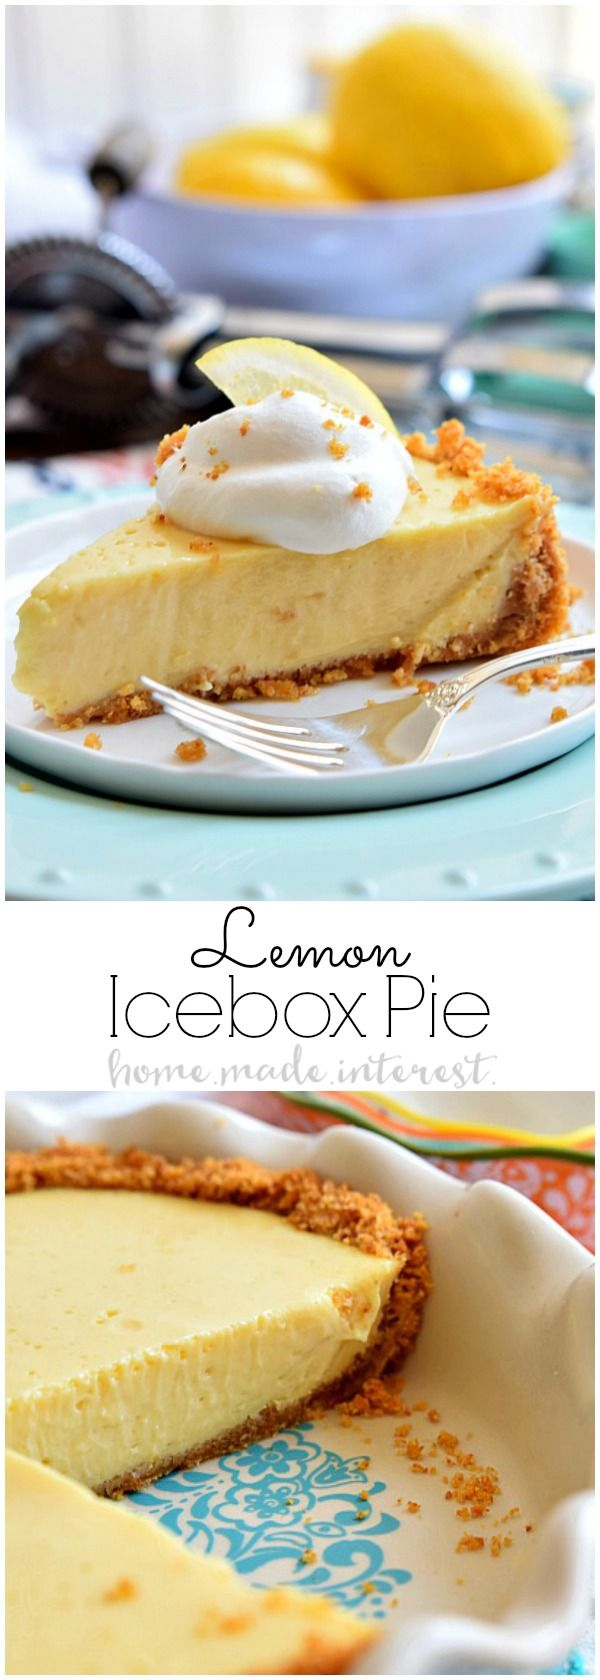 This sweet and creamy Lemon Icebox Pie is a lot like a Key Lime Pie recipe with lemons instead of Key Limes. It is one of my favorite summer dessert recipes with lemons! A creamy lemon filling baked into a graham cracker crust and topped with some fresh whipped cream make this one of the best summer pies you'll ever make!